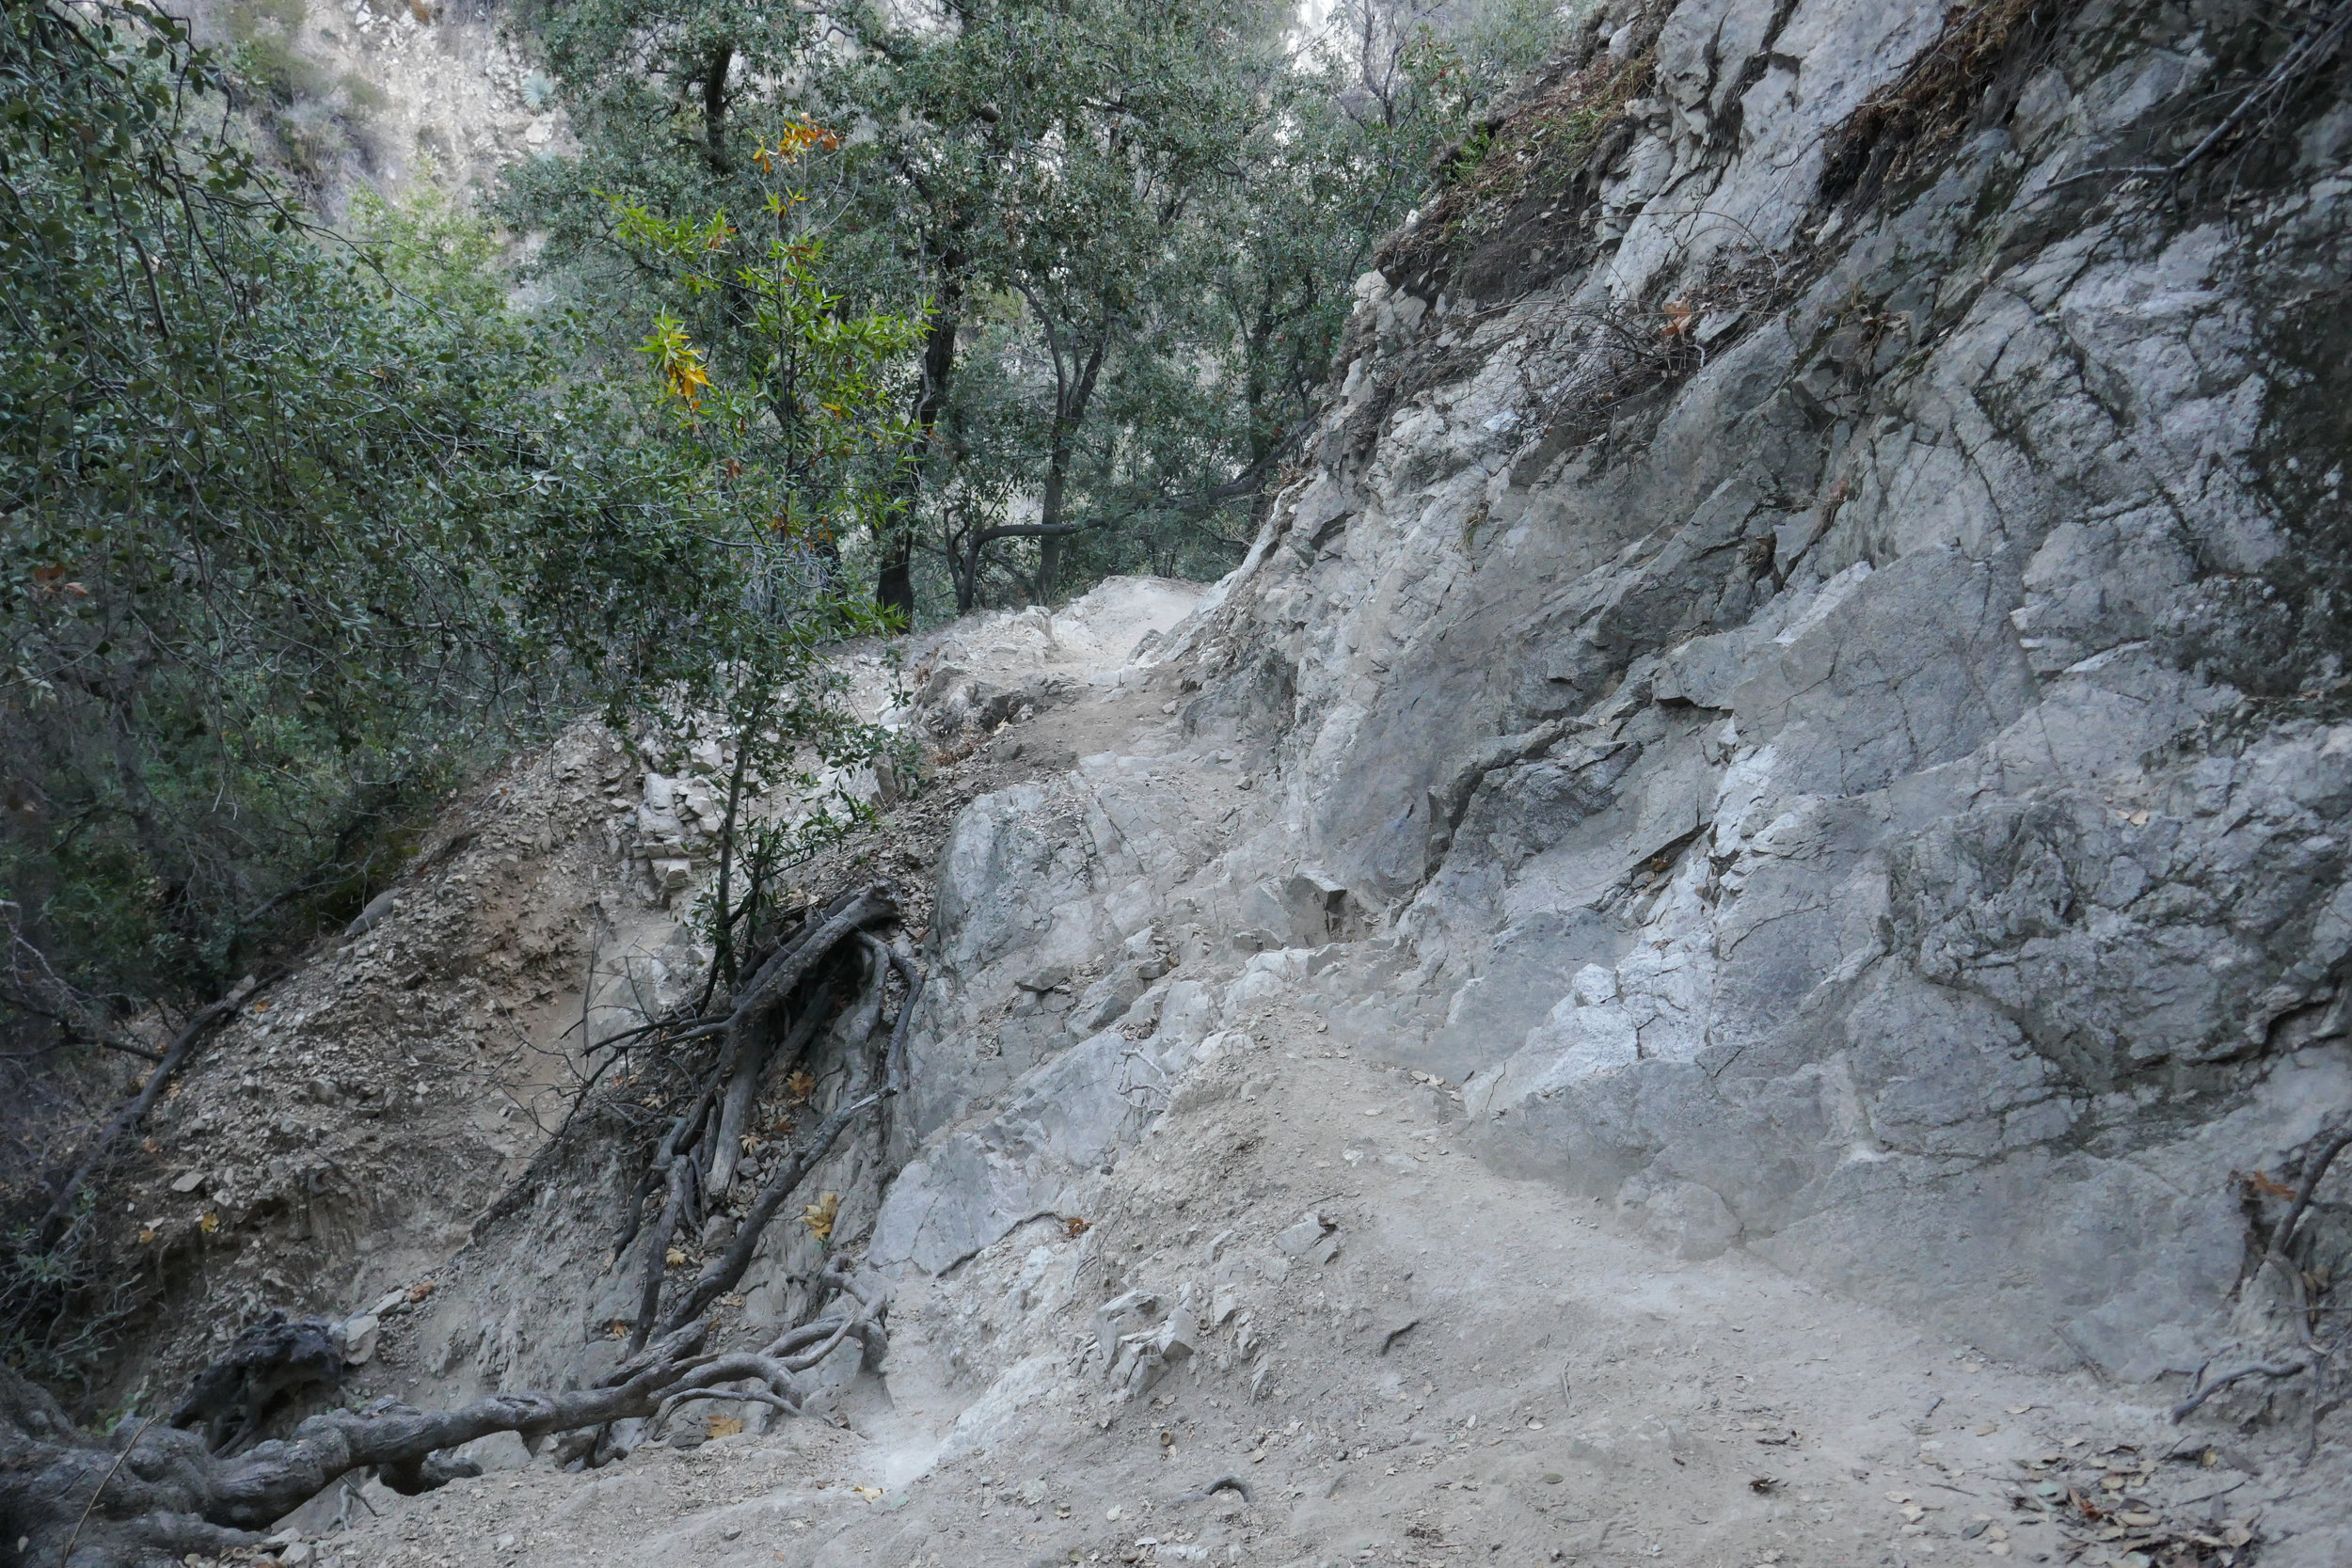 Another photo of the trail where you have to watch your step.